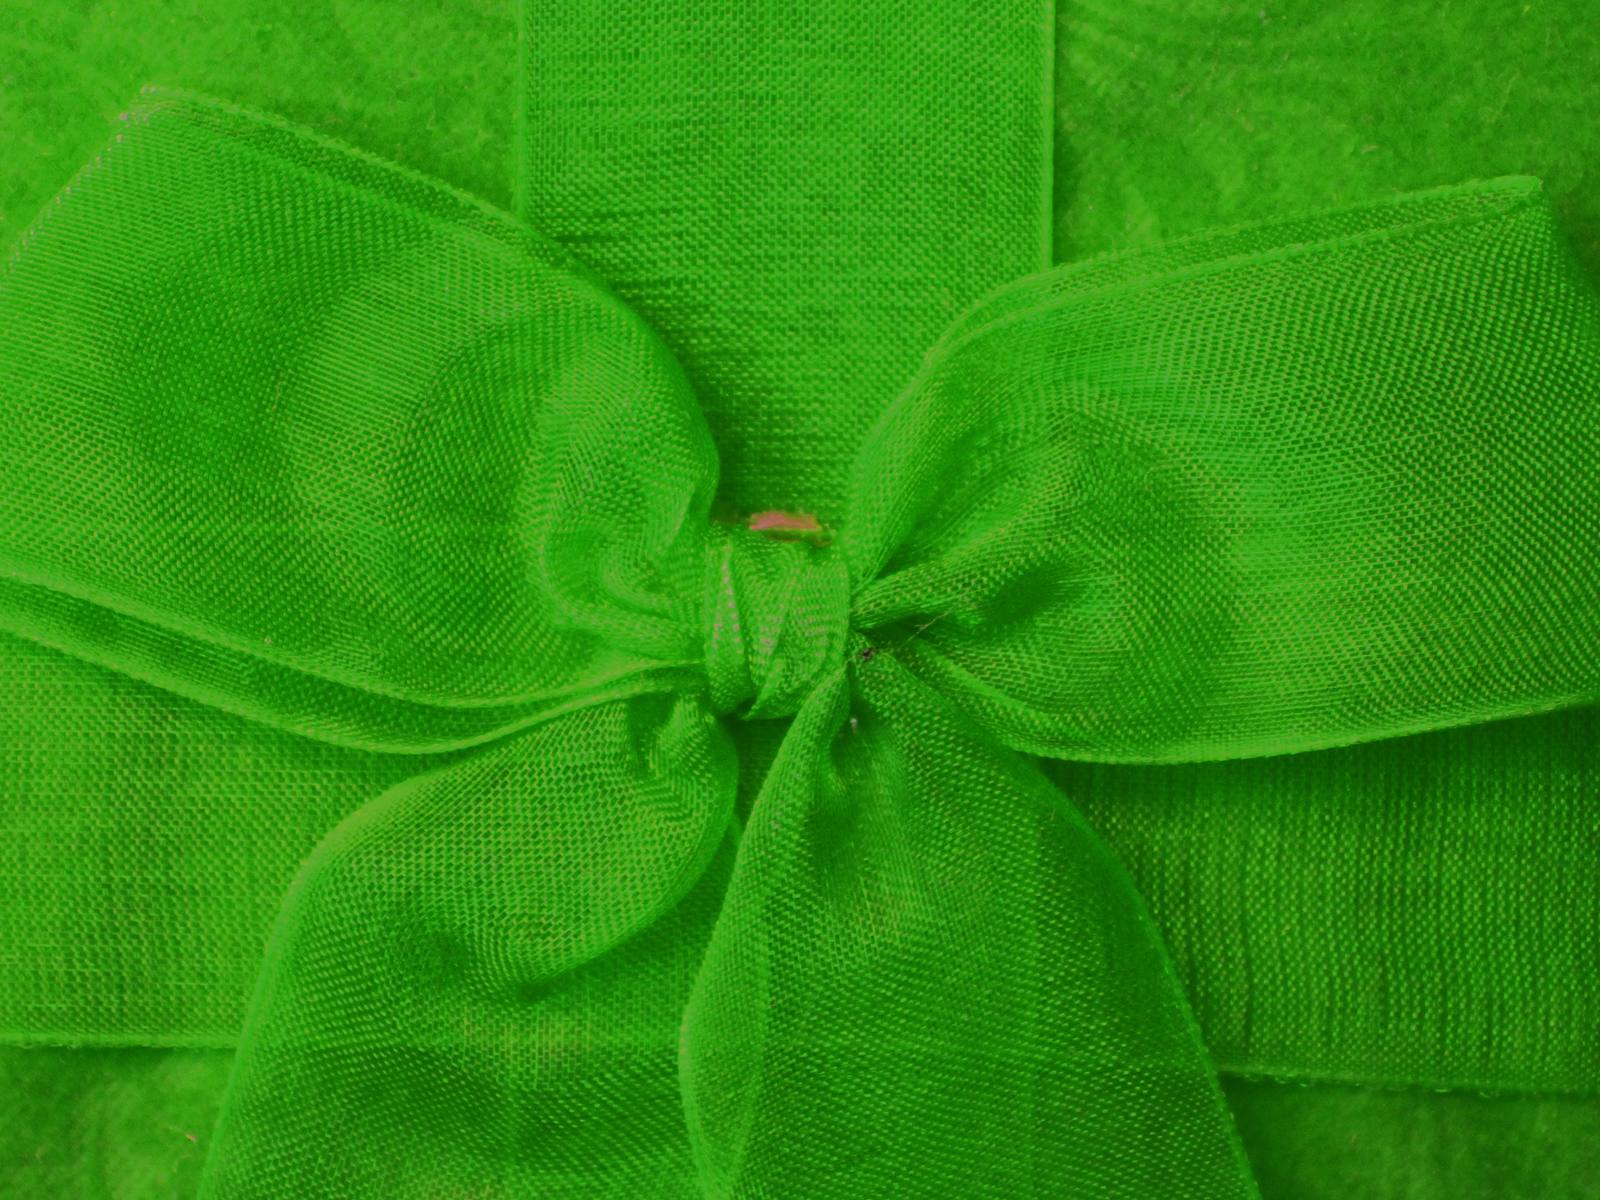 The green ribbons PPT Backgrounds